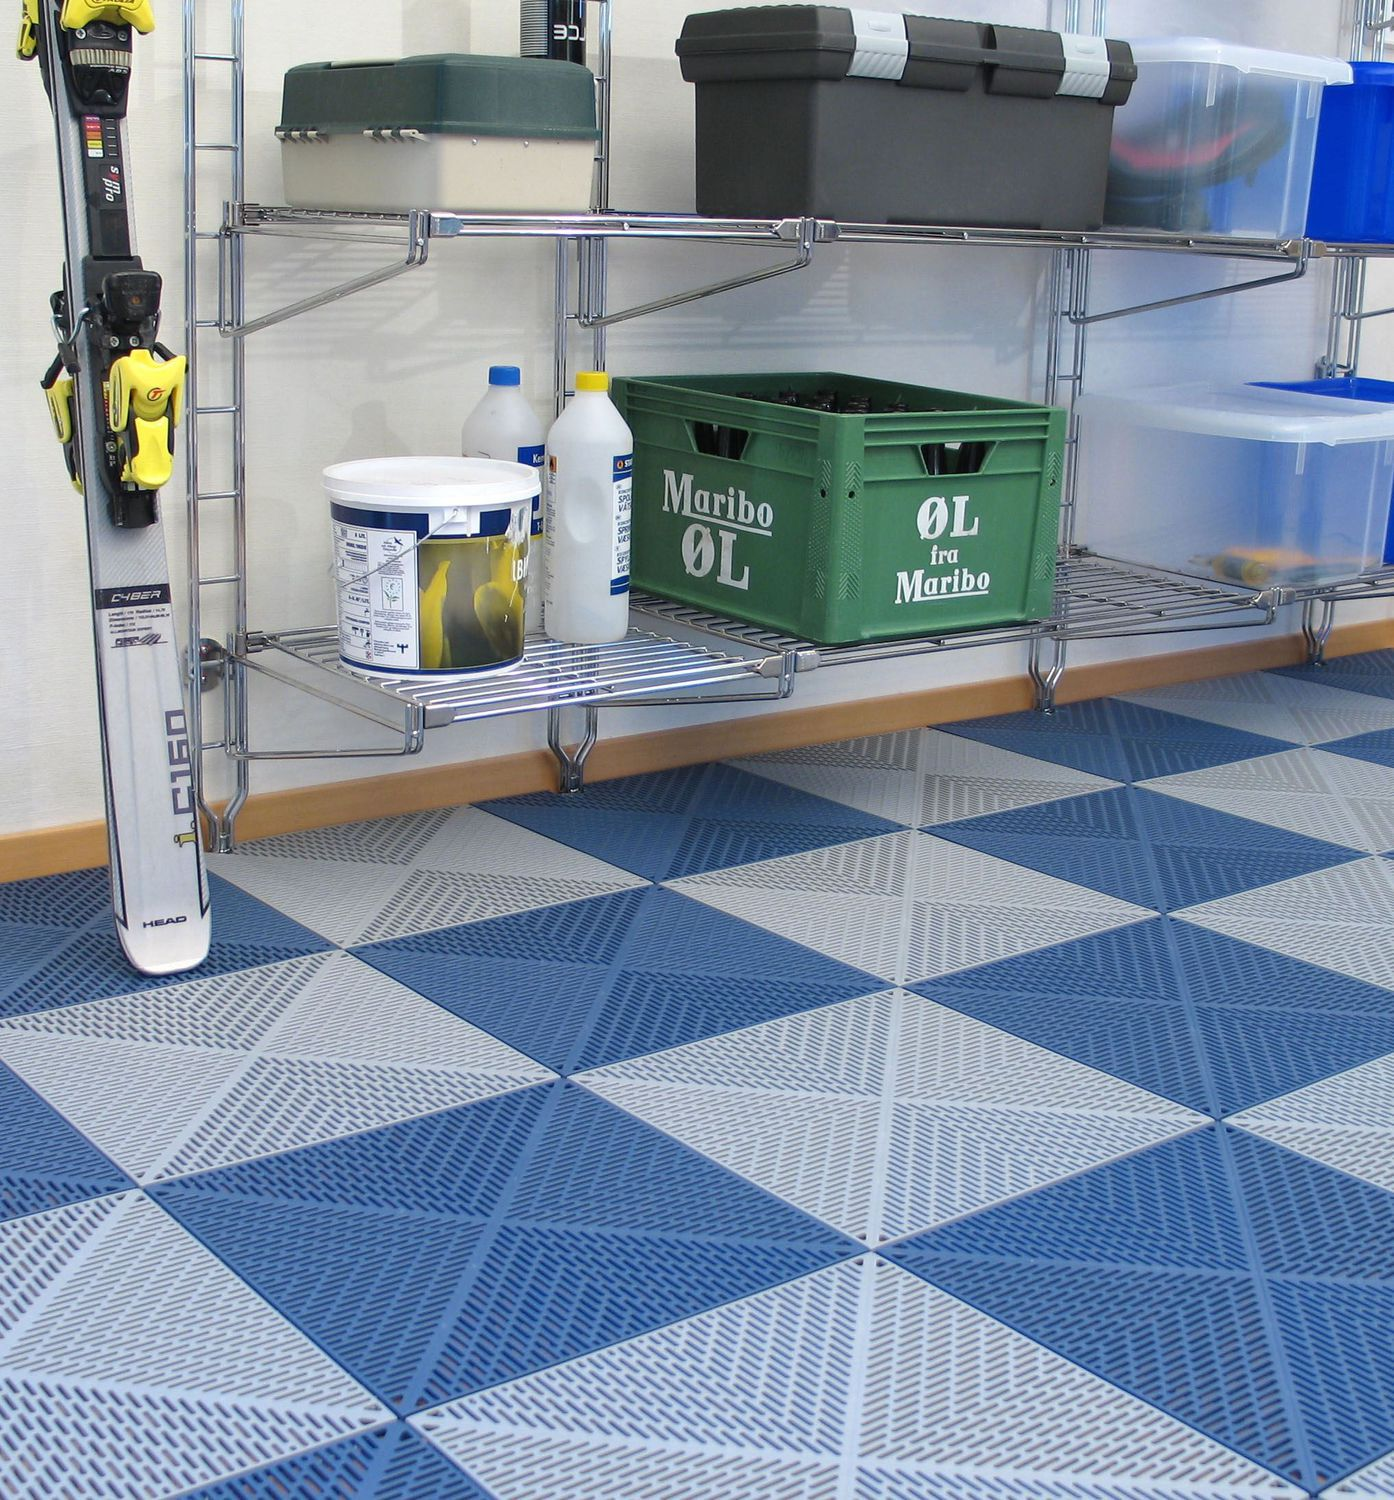 Plastic deck board - BERGO UNIQUE - Bergo flooring